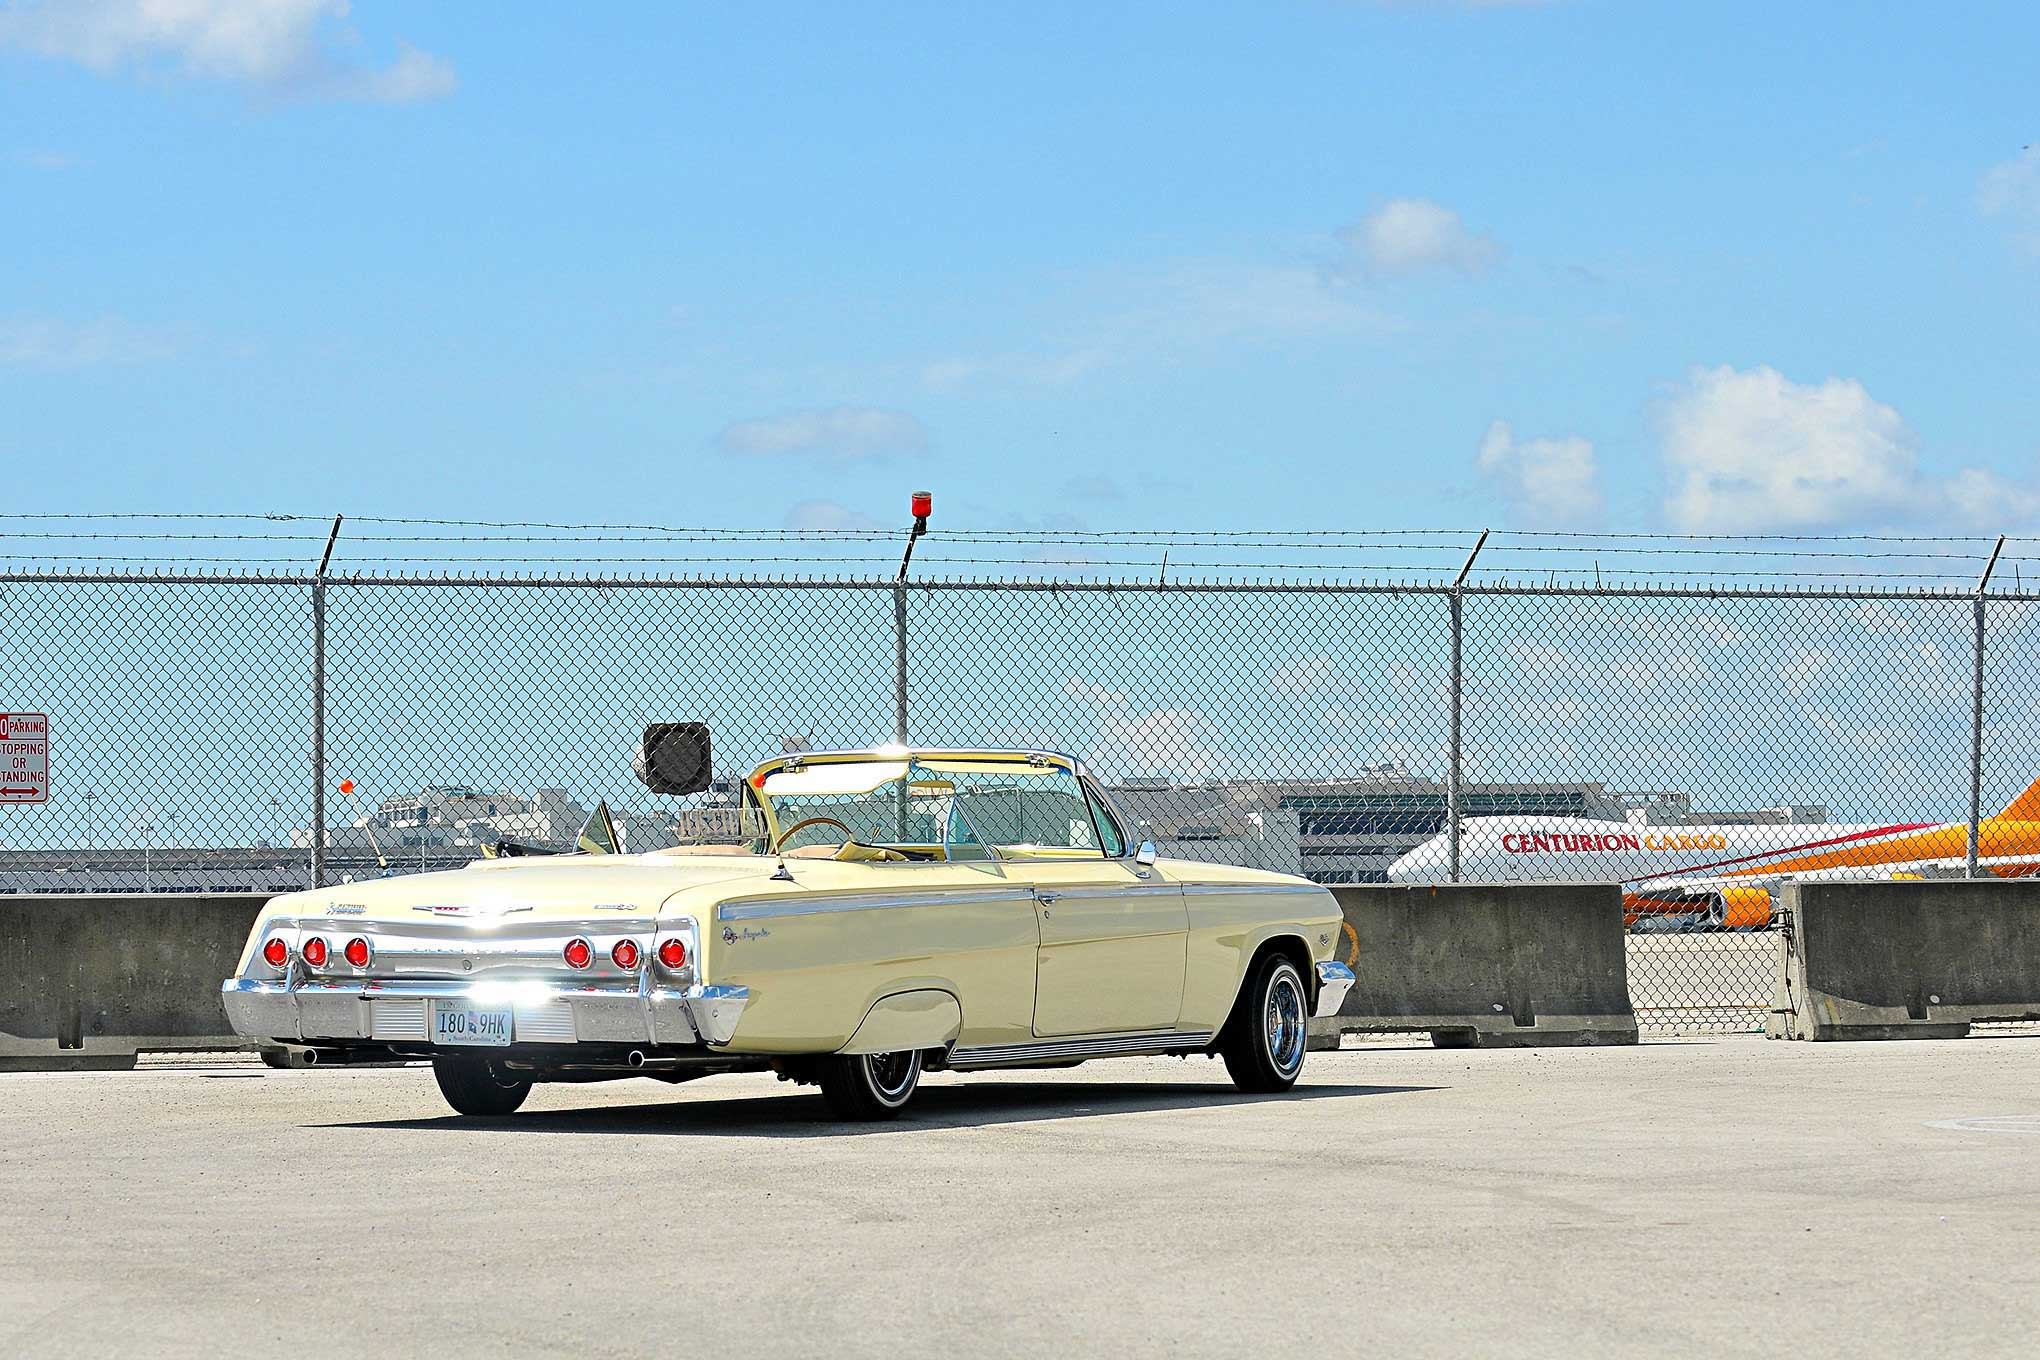 Worth the Wait for this 1962 Chevrolet Impala